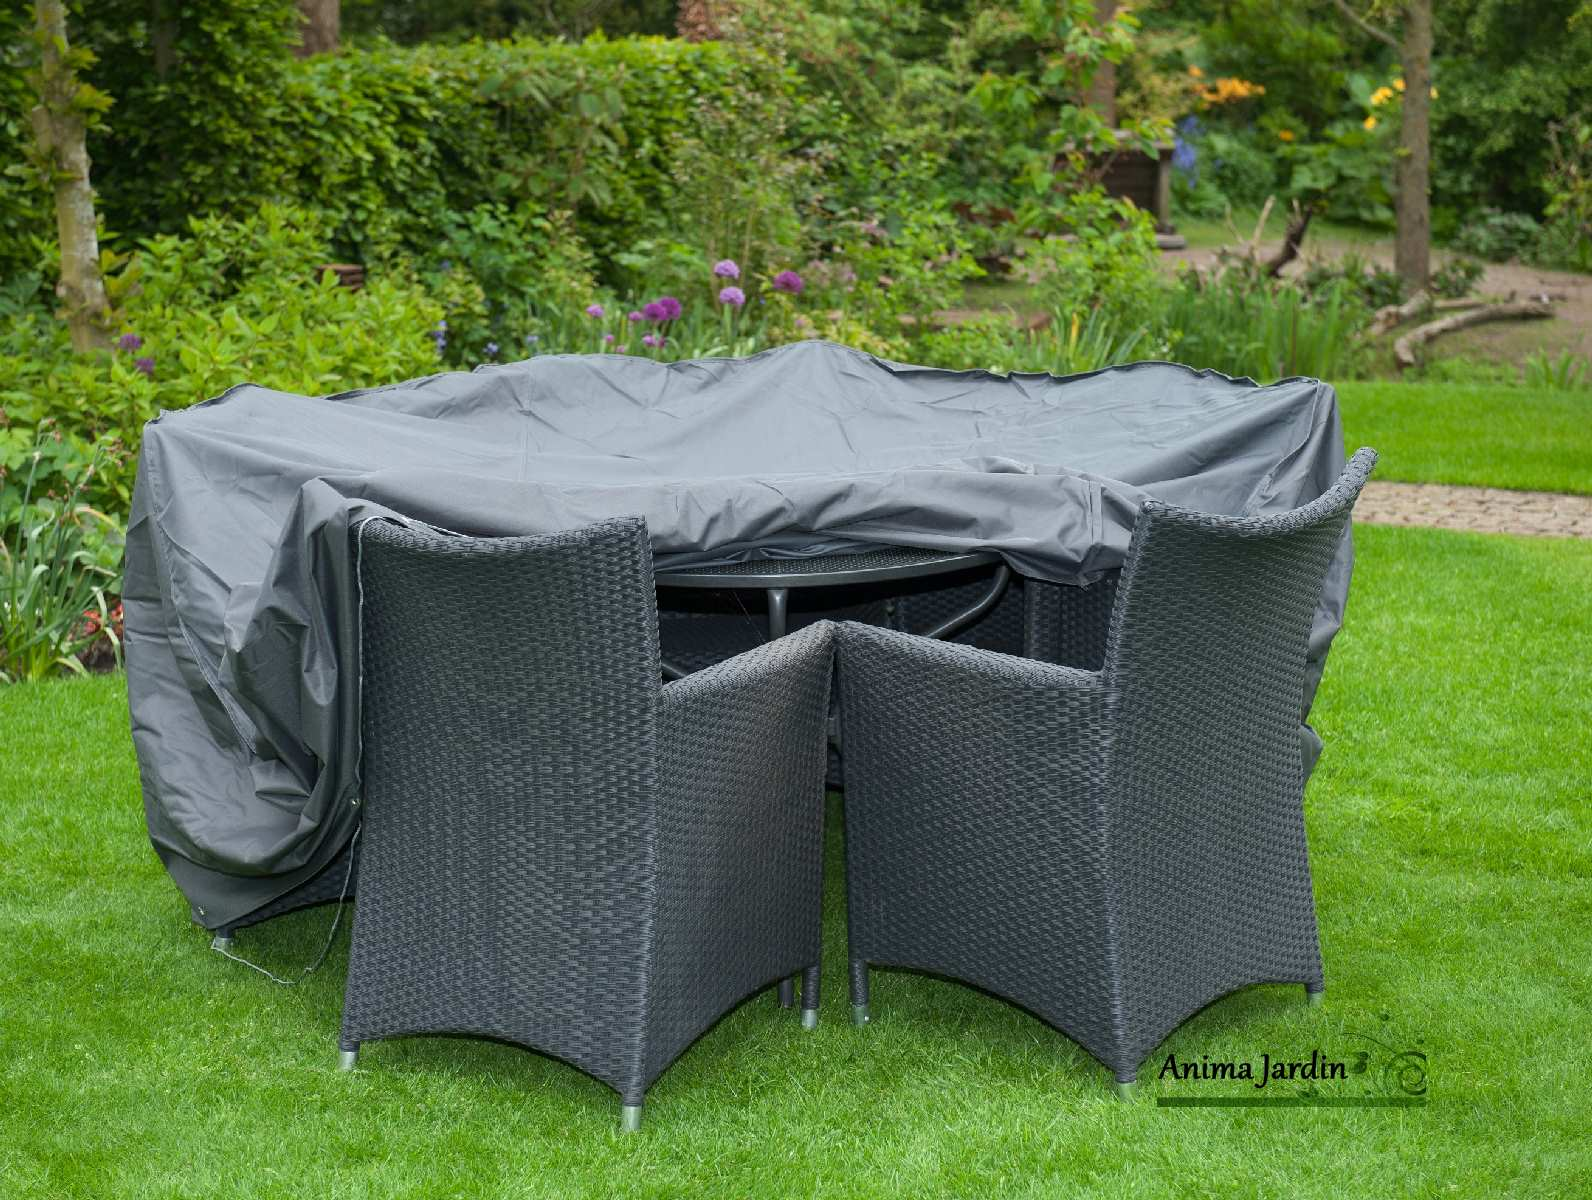 Housse De Protection Salon De Jardin Table Ronde Imperm Able: table salon de jardin ronde